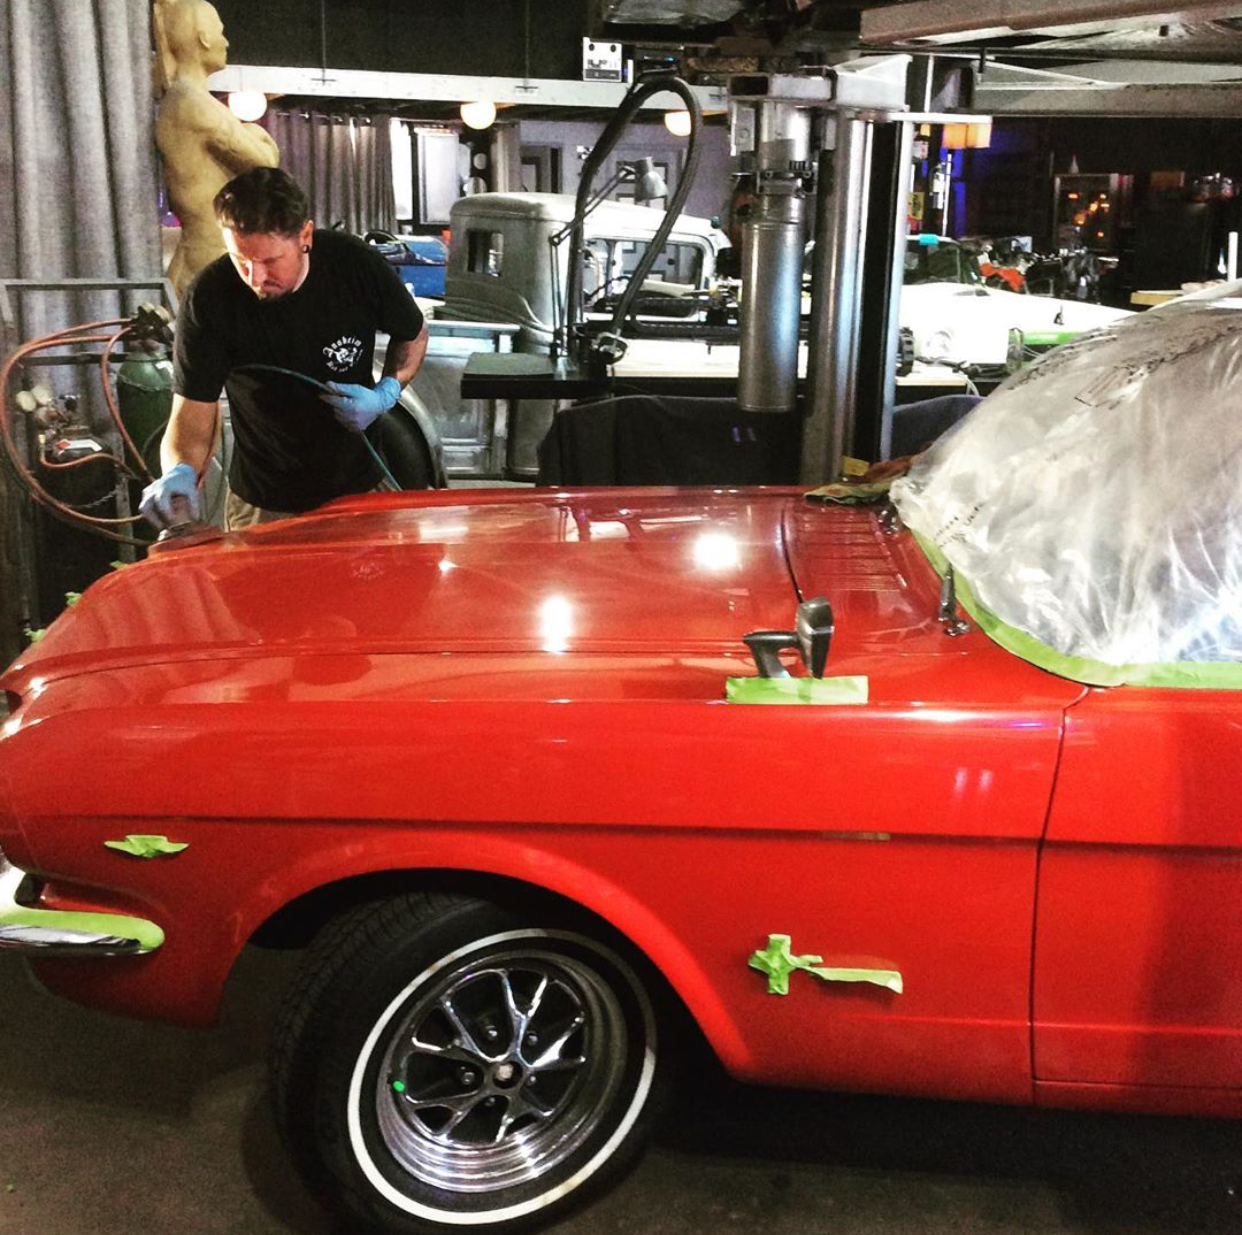 Shawn color sanding on this 1965 Mustang!